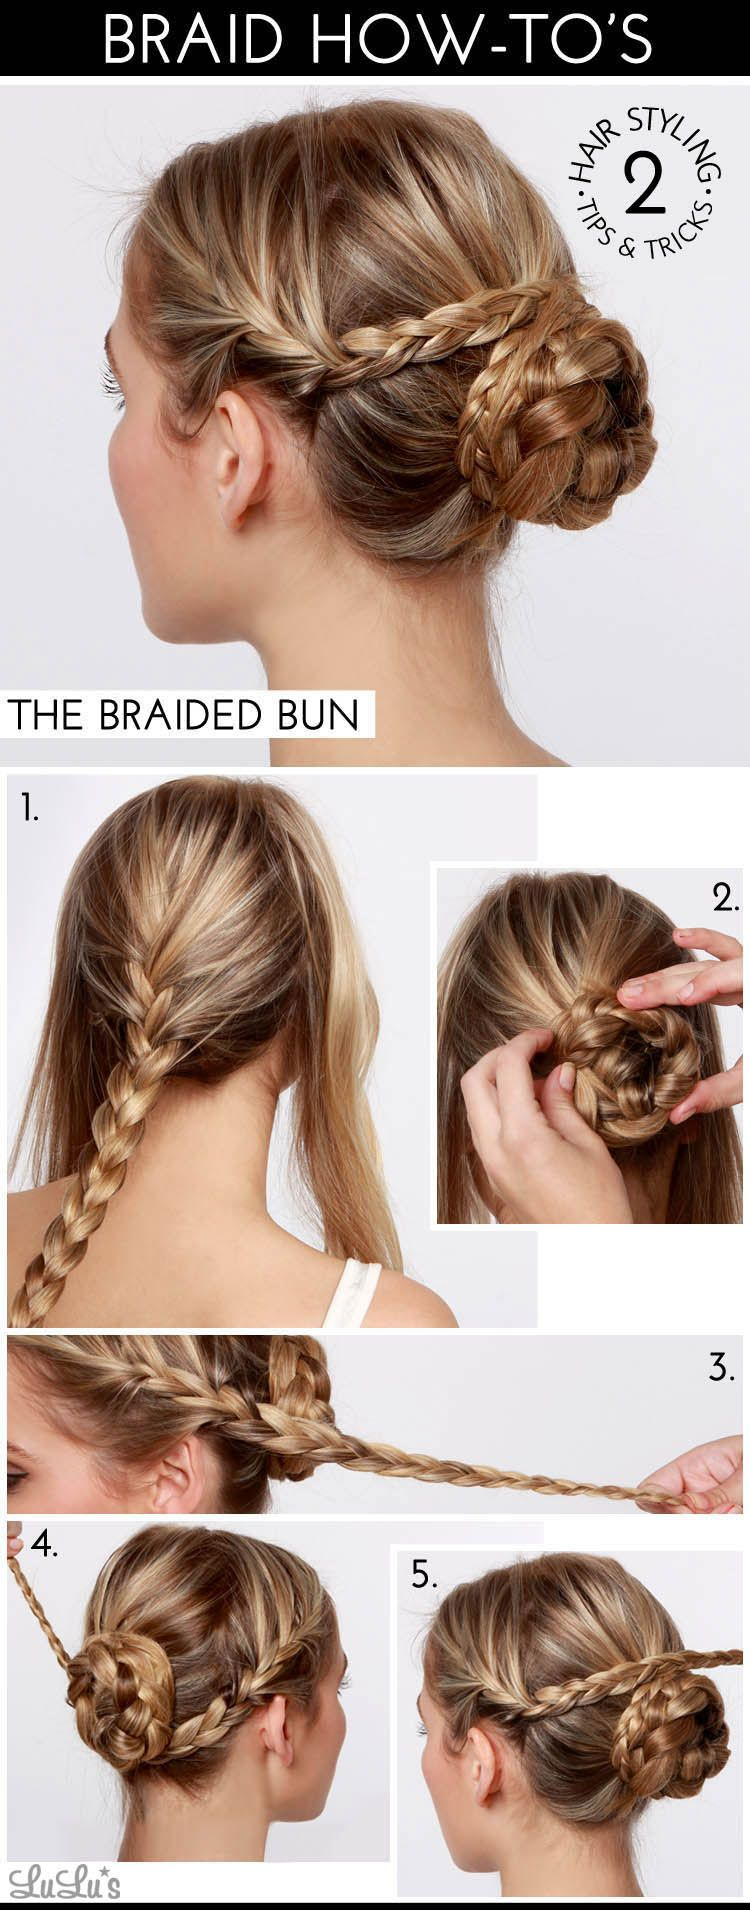 Braid on the sidesbraided bun a fun hair style for a special